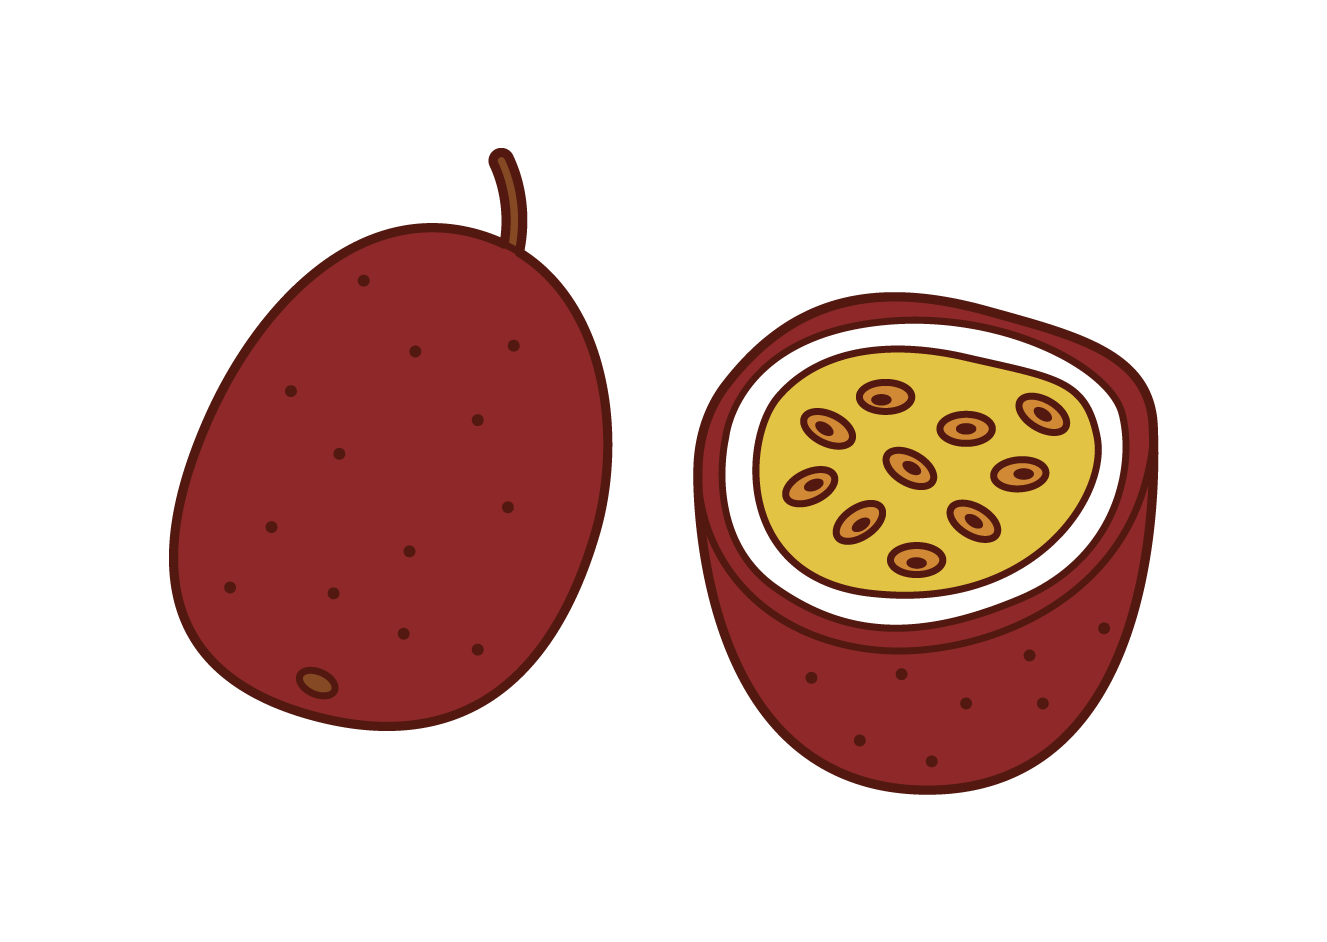 Passion Fruit Illustrations